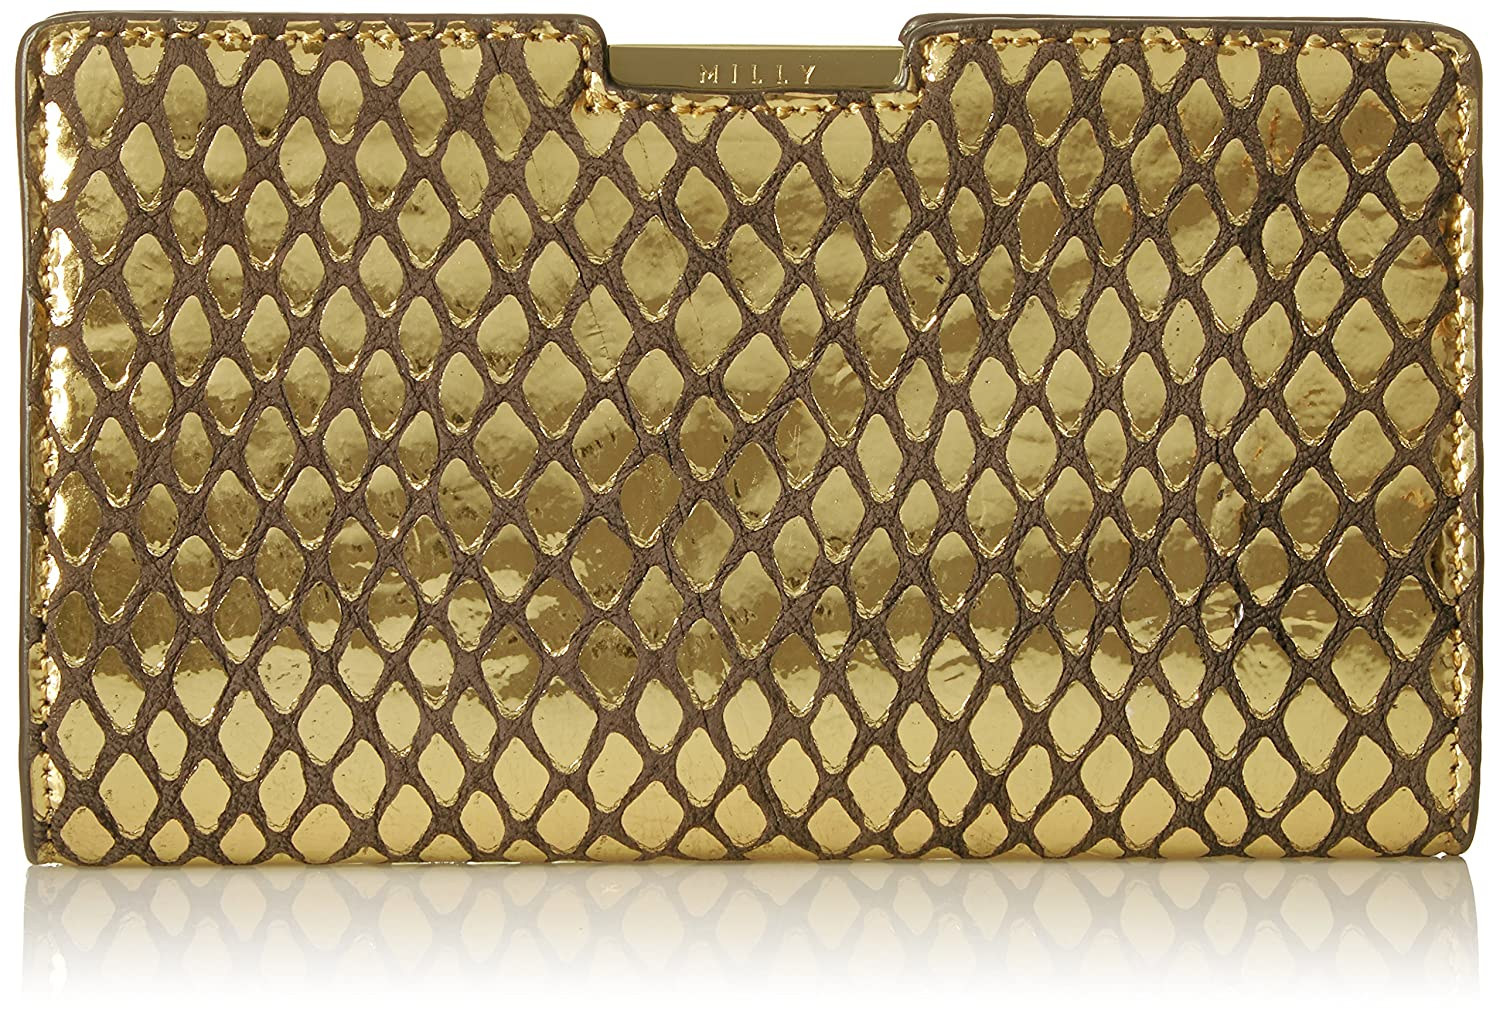 MILLY Metallic Reptile Small Frame Clutch 102MR66316